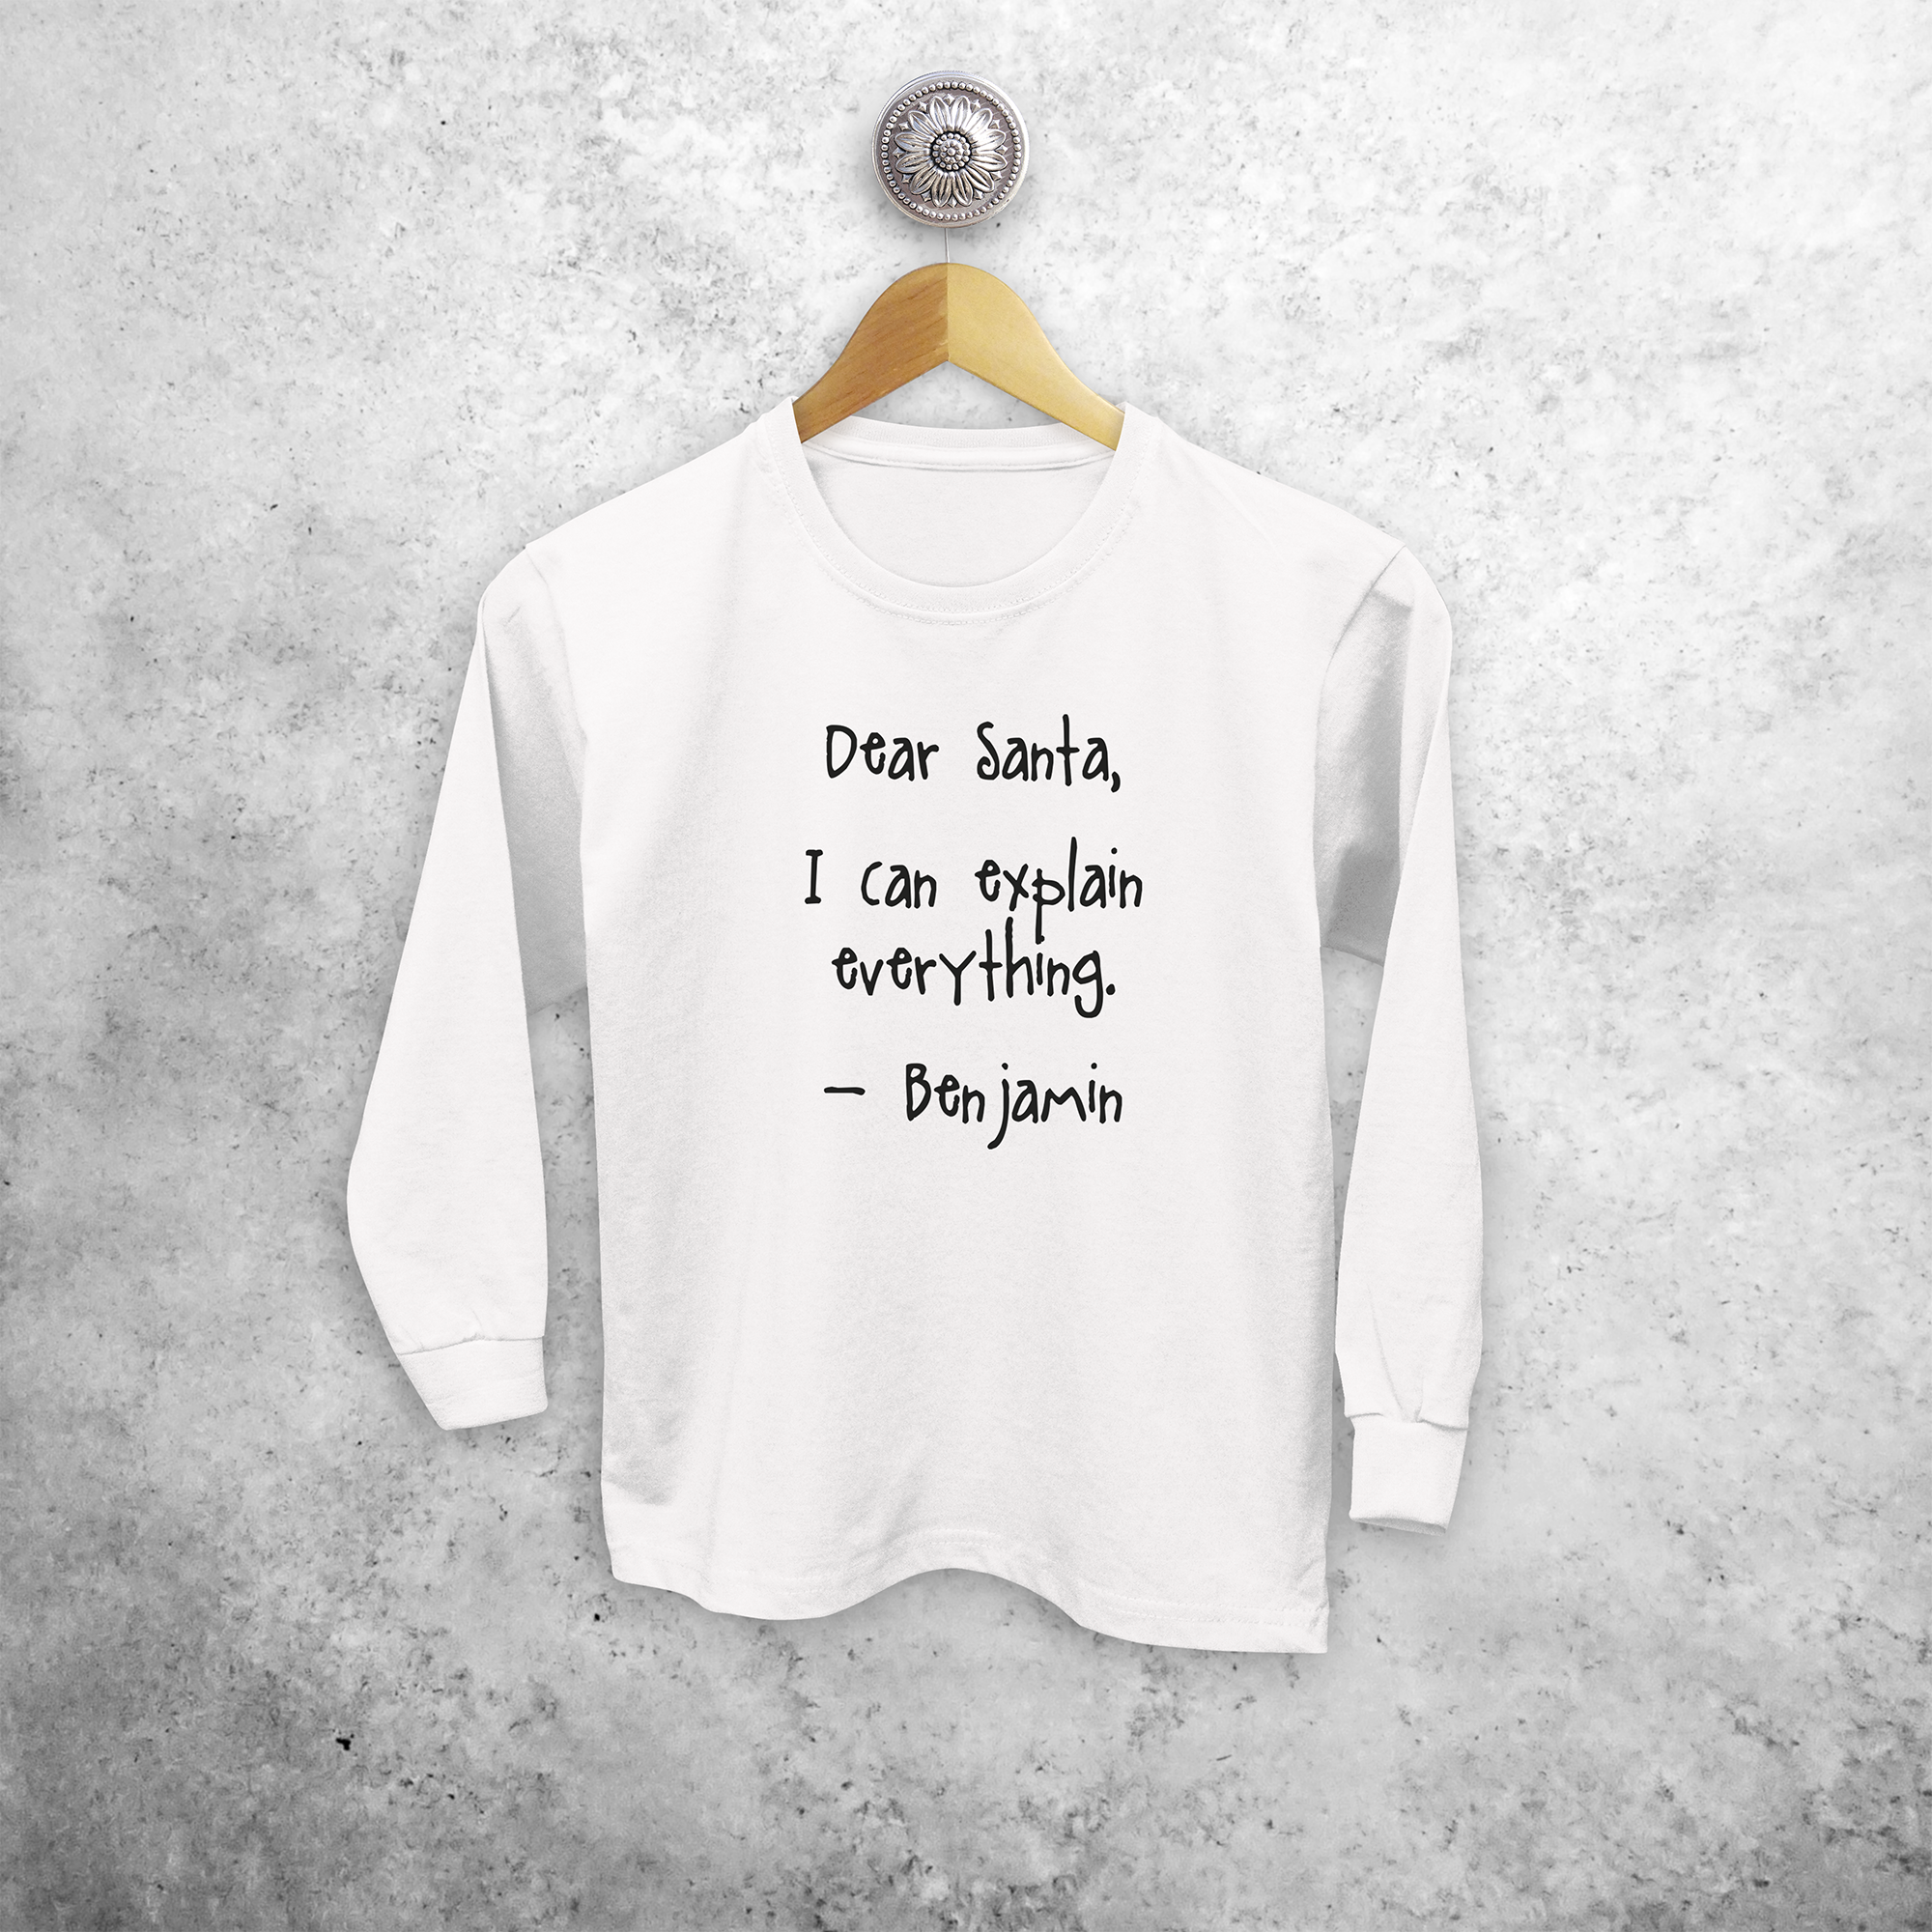 Kids shirt with long sleeves, with 'Santa, I can explain everything' print by KMLeon.